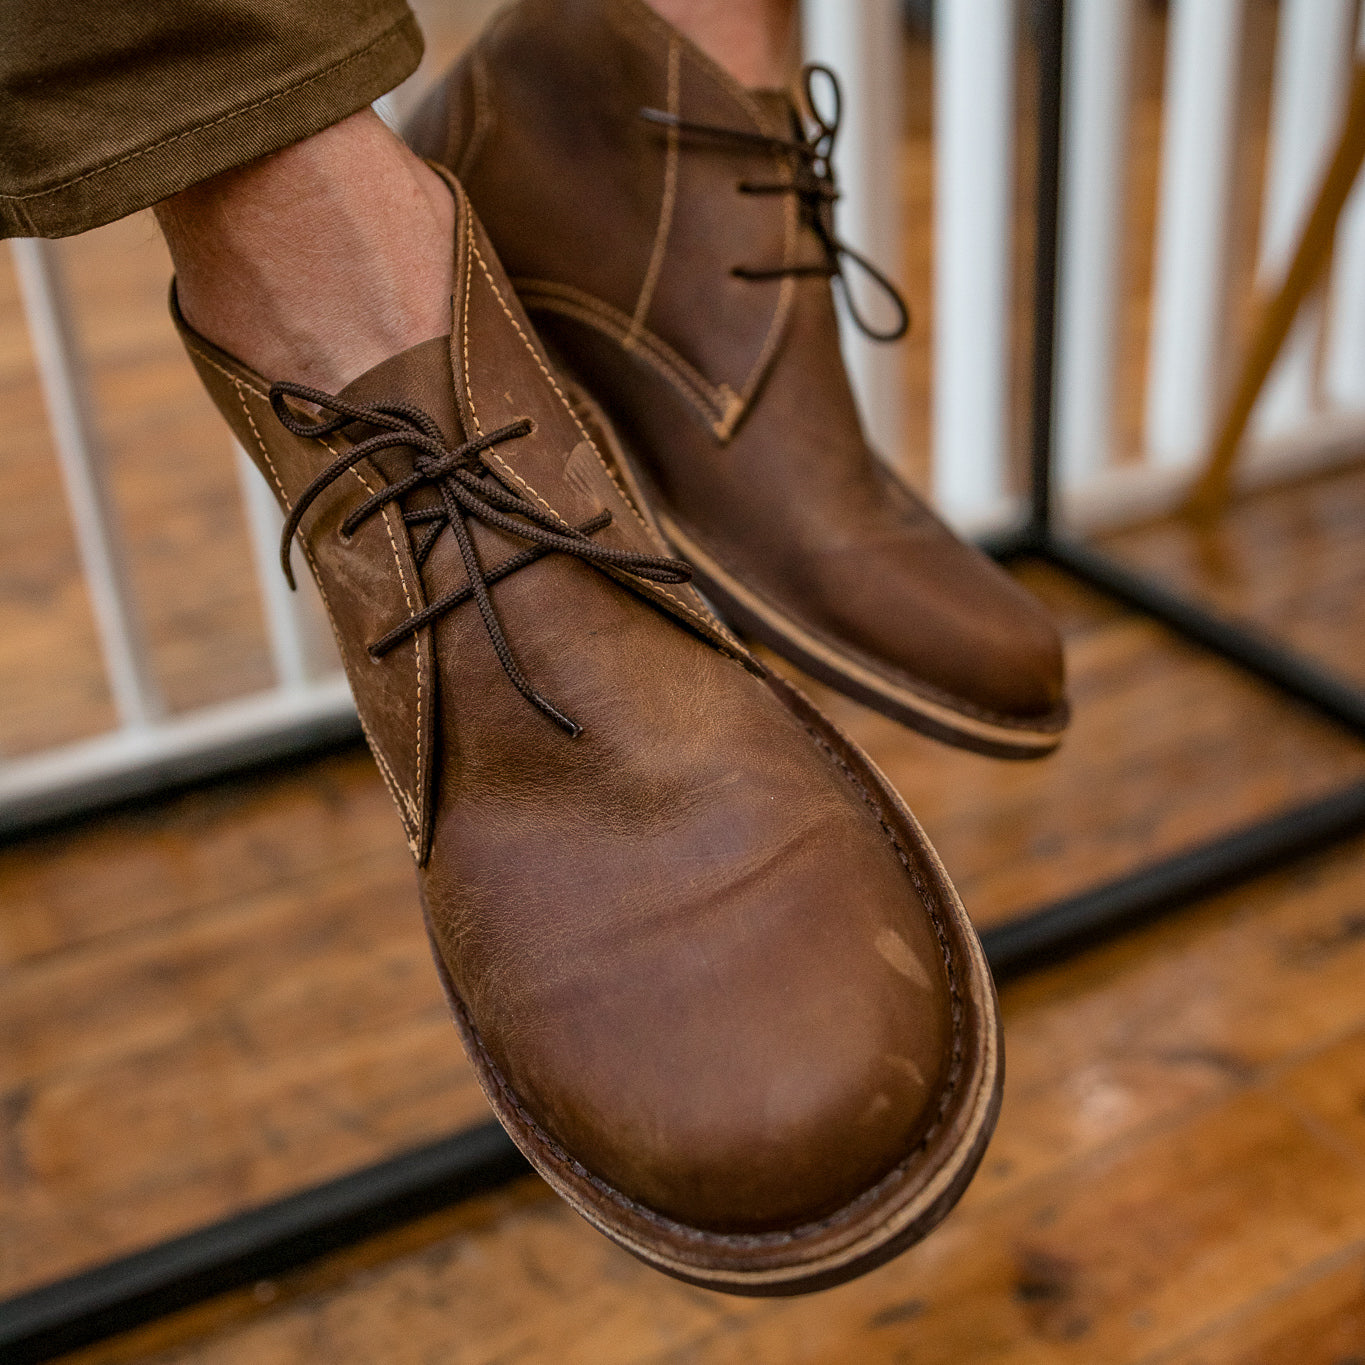 Veldskoen shoes and boots or known as vellies chukka boot ethically and sustainably handcrafted in South Africa sold in united states  man sitting hanging brown leather shoes in chukka style